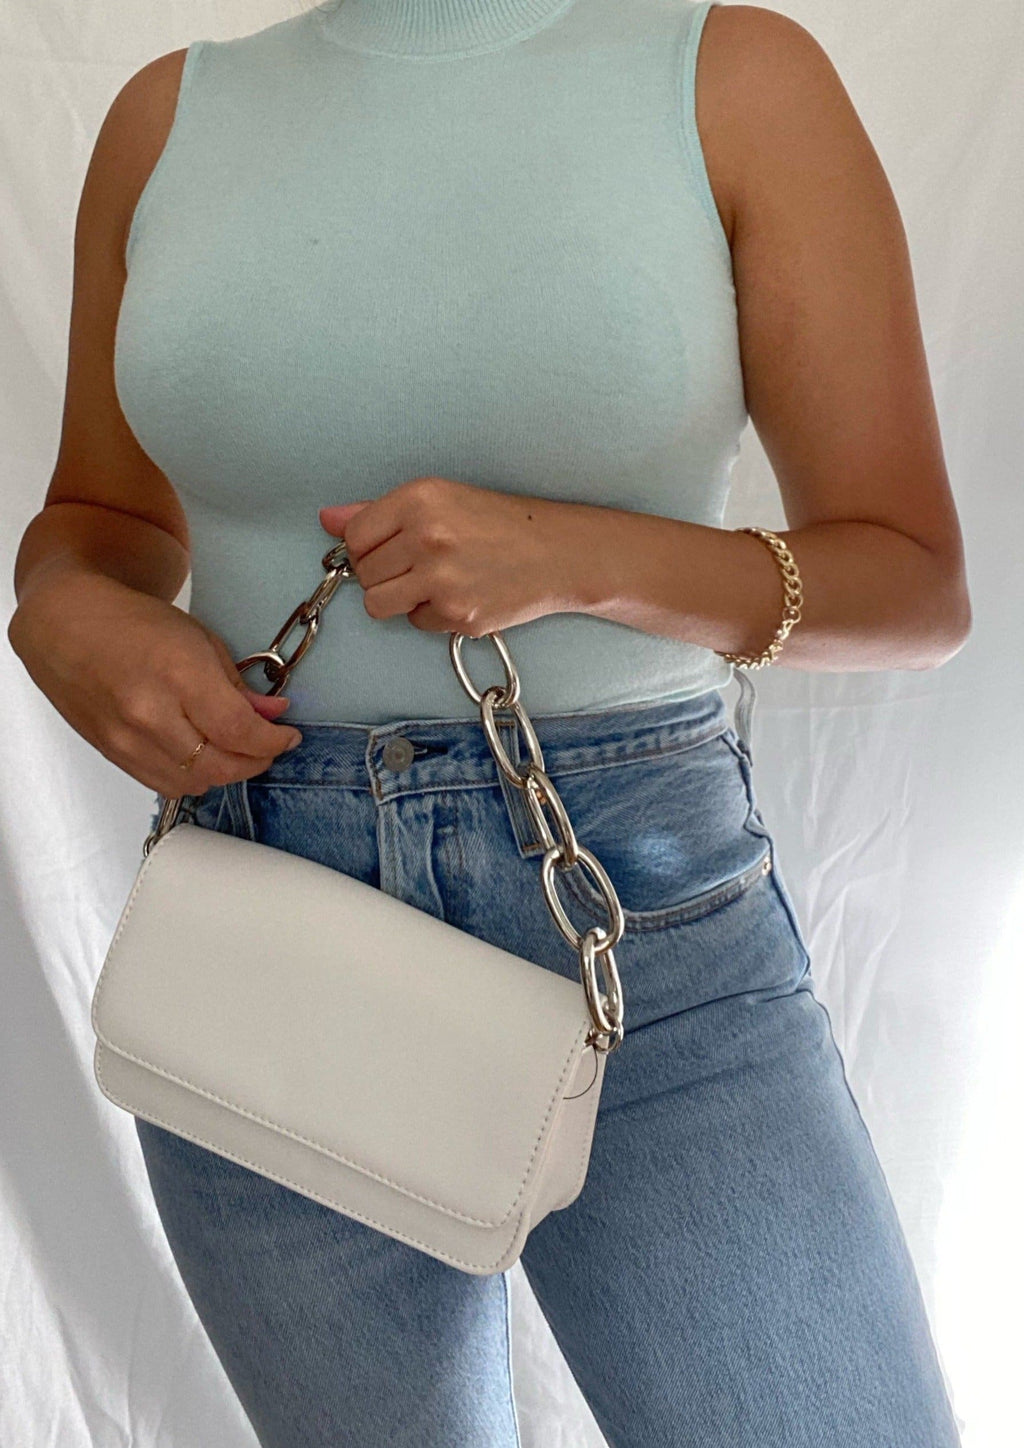 90210 Bag White - Accessories